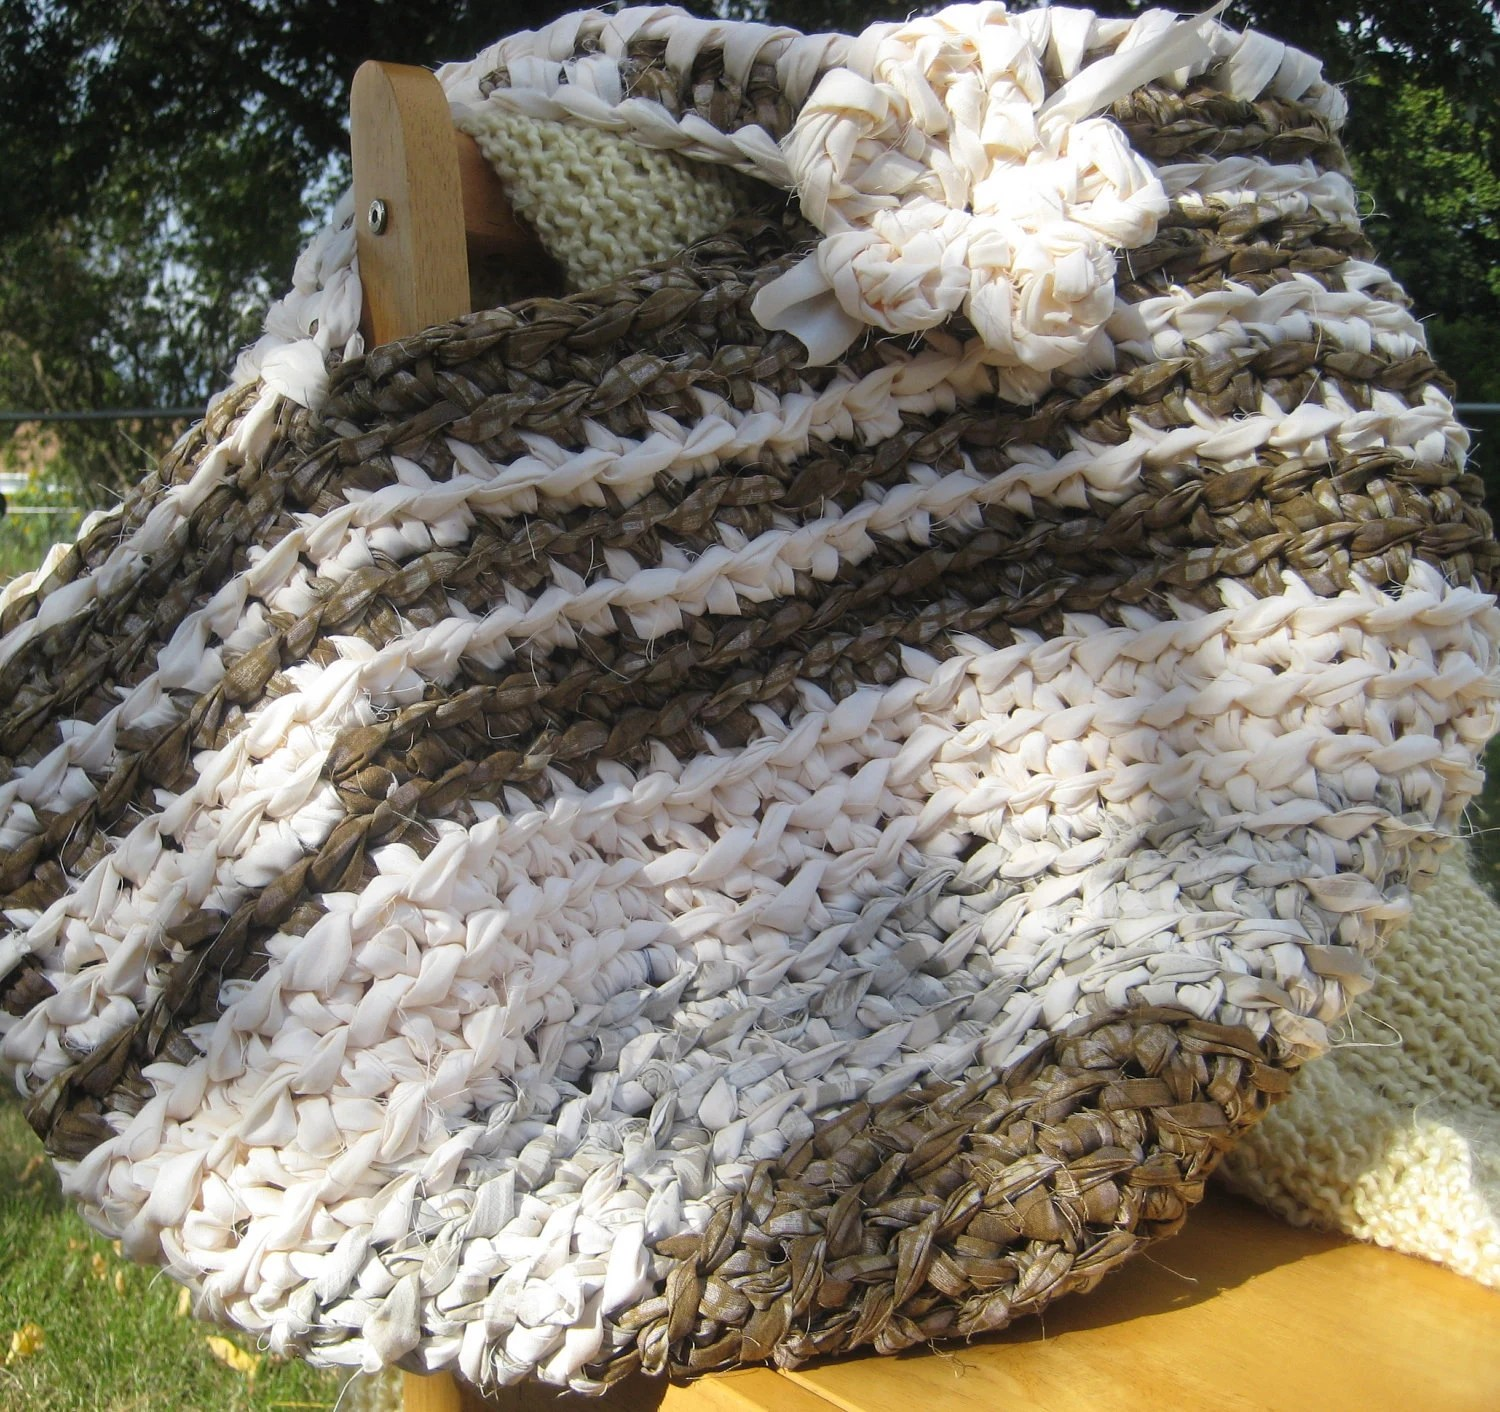 Brown & Creamy Beige 'Rag Rug' Bag, Basket, Tote, Carry-all, Storage